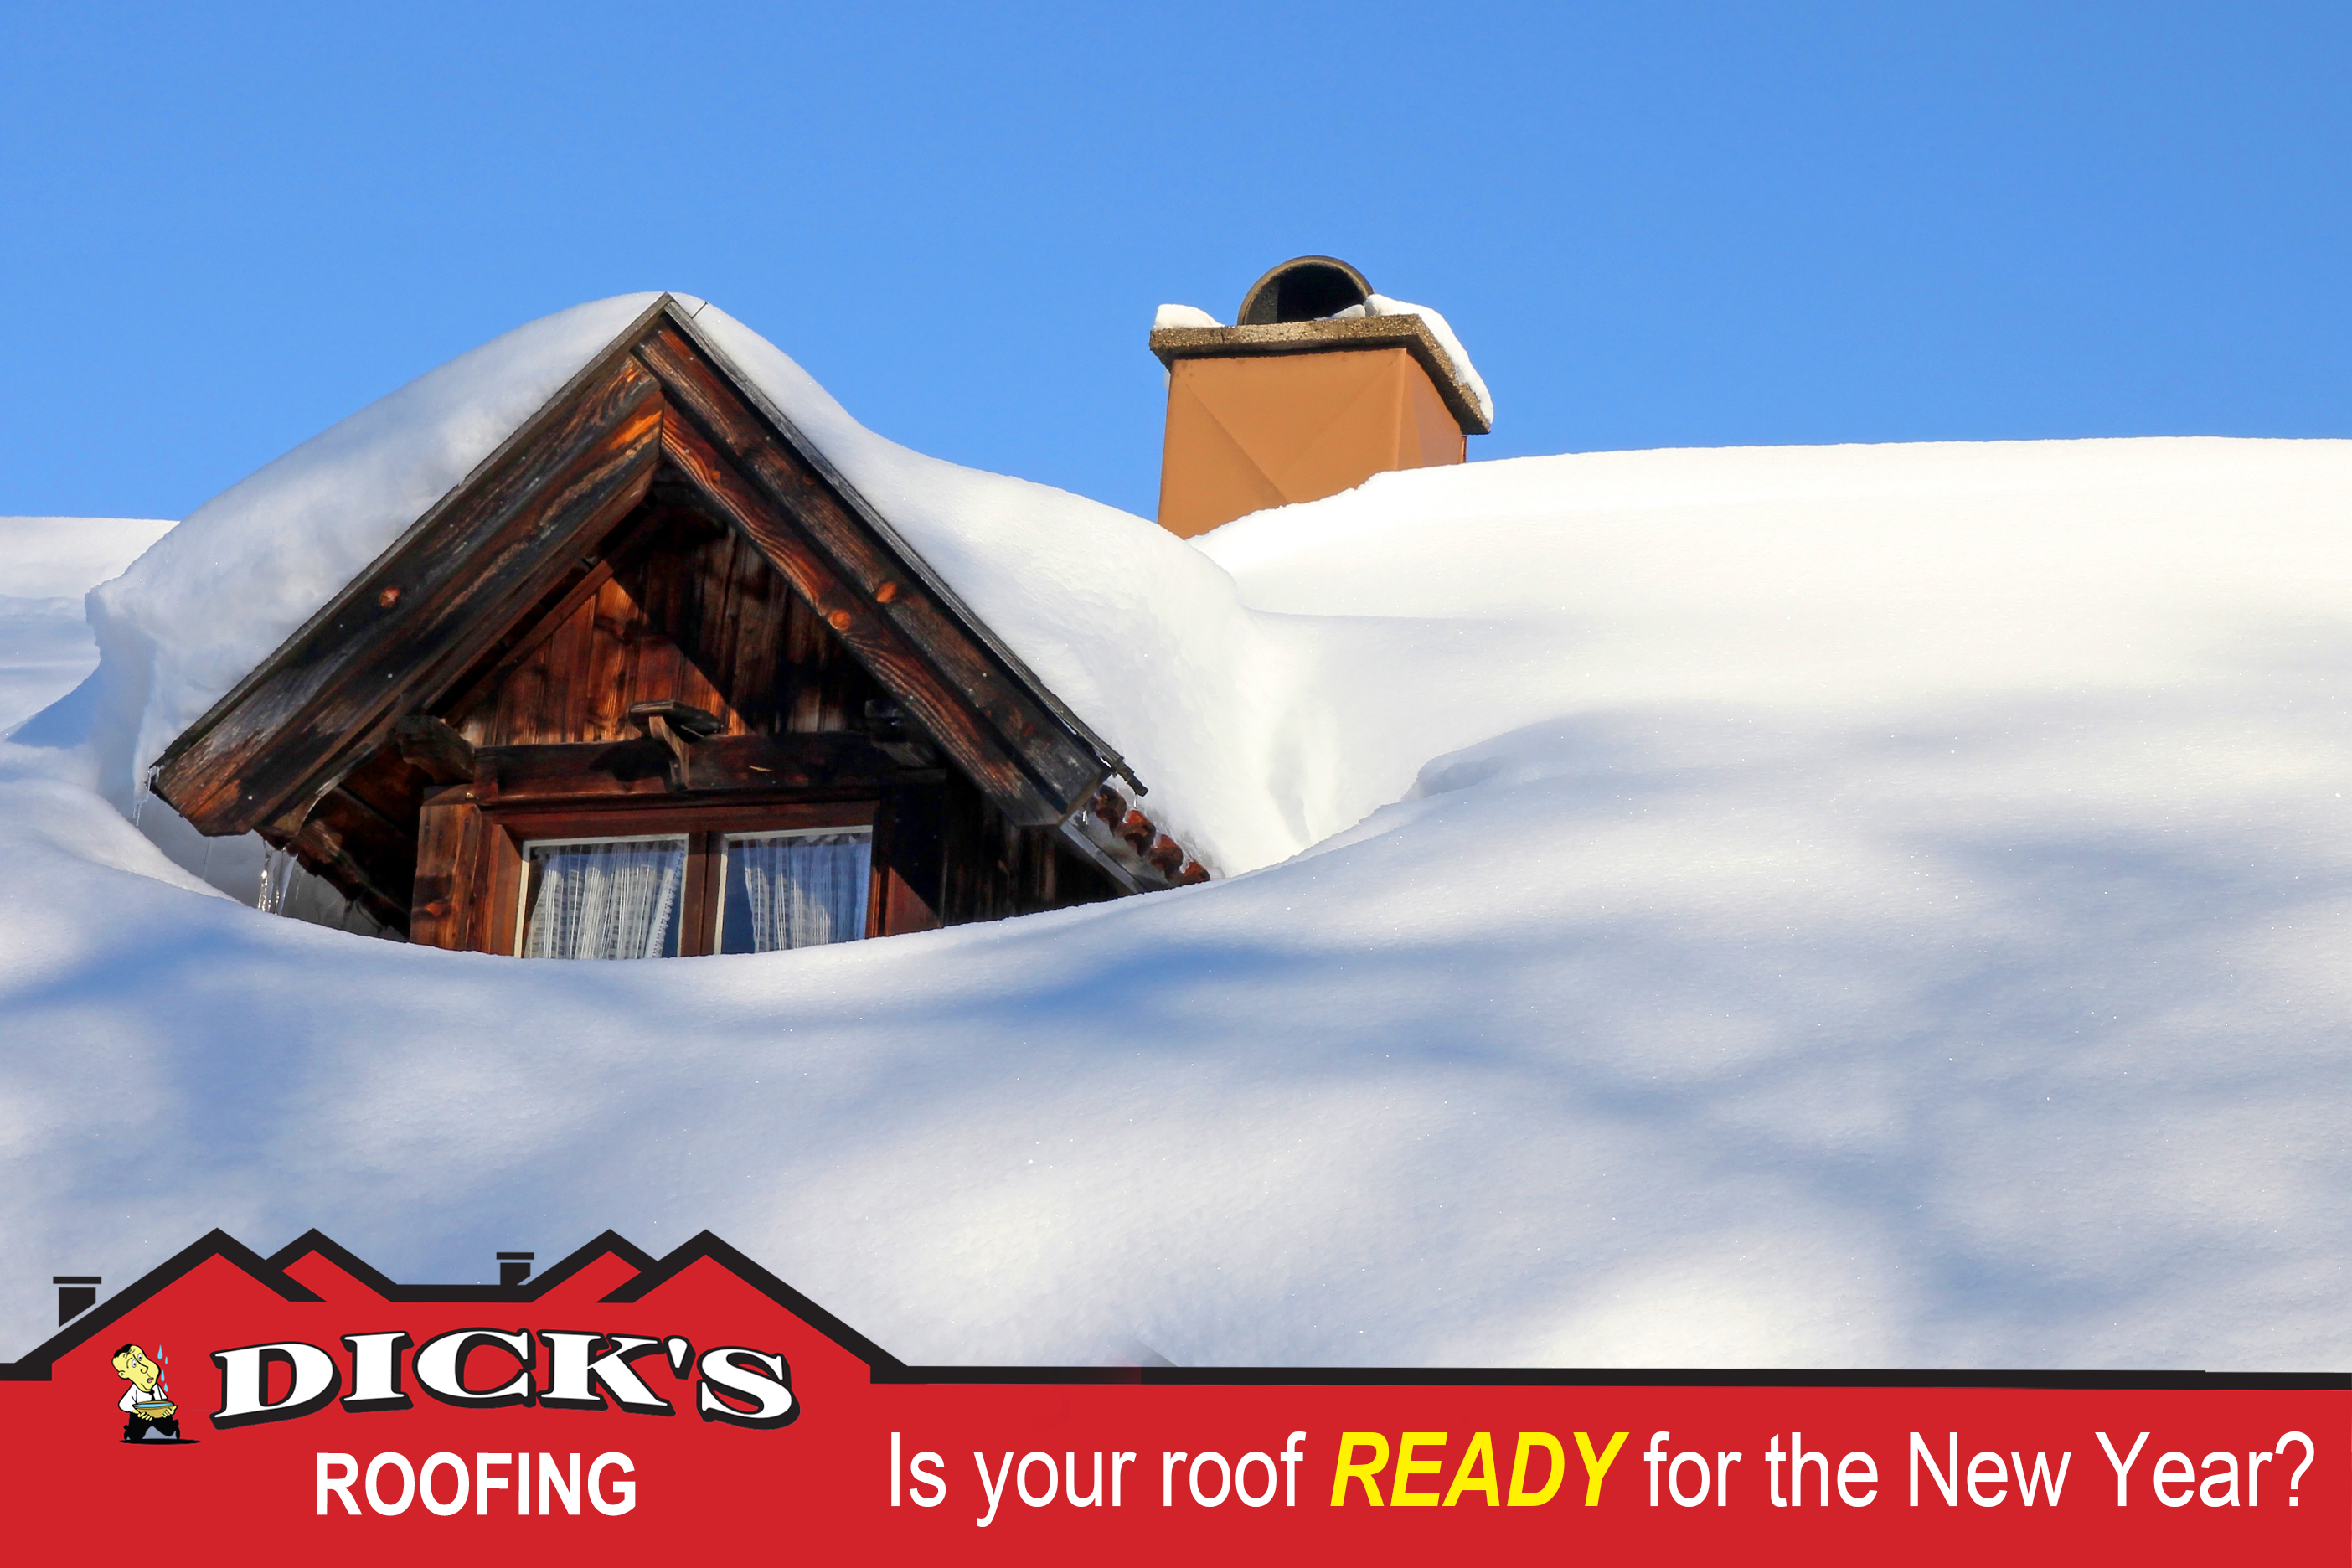 Is Your Roof Ready for the New Year? Dick's Roof Repair